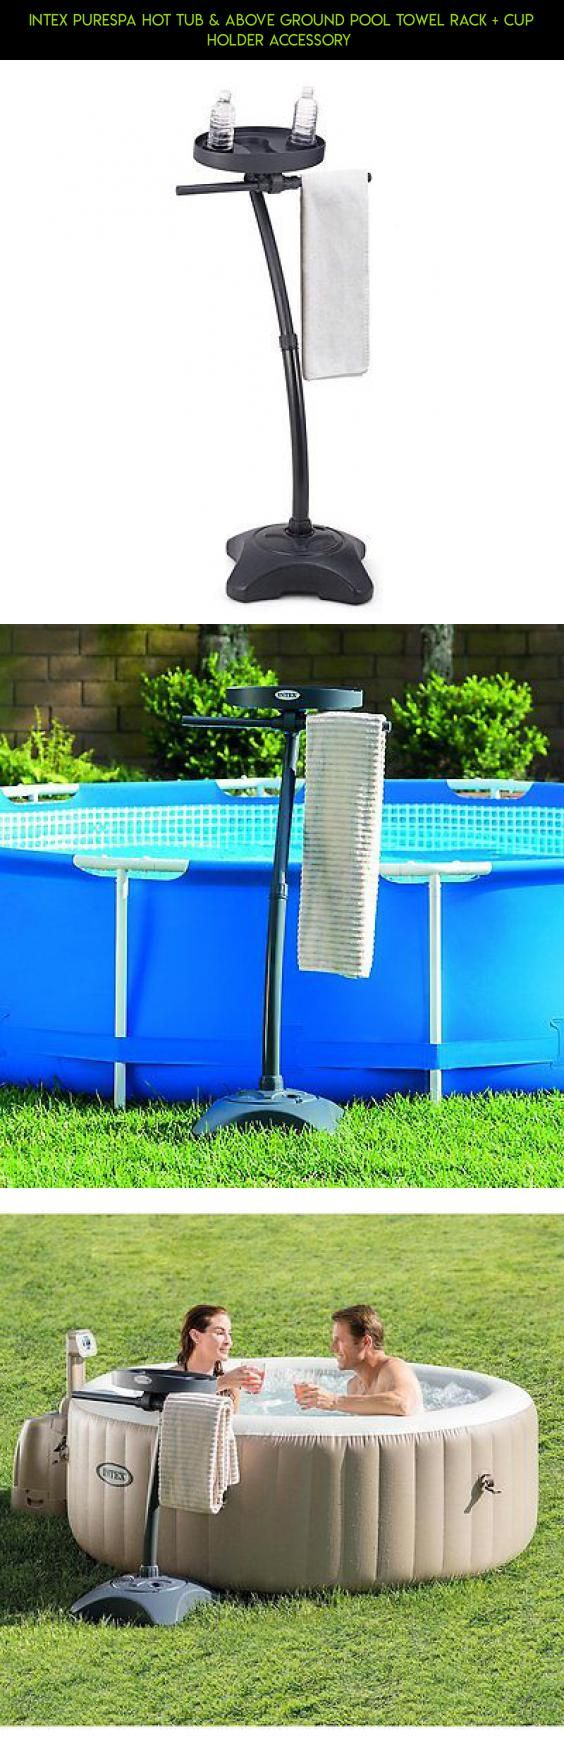 528 best tubs images on pinterest drones tubs and cameras